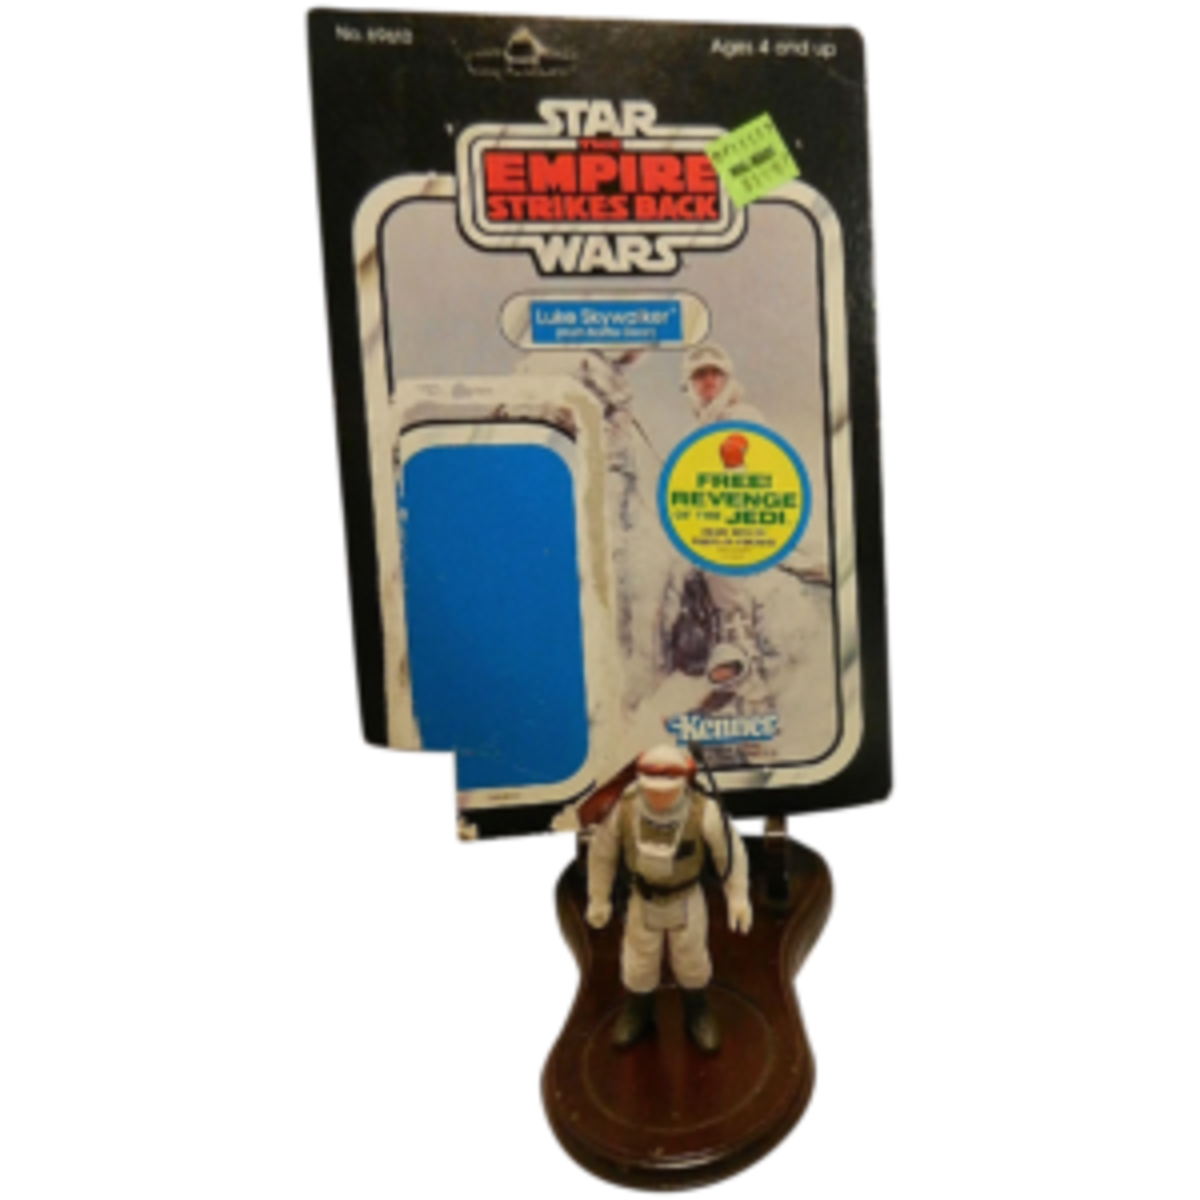 Relive the exciting Hoth battle scene from The Empire Strikes Back with a vintage Kenner Luke Skywalker action figure in Hoth Battle Gear with 48-card backer. This one even still has the original Walmart sticker of $1.97; $20. Courtesy of My Grandmother Had One: rubylane.com/shop/mygrandmotherhadone